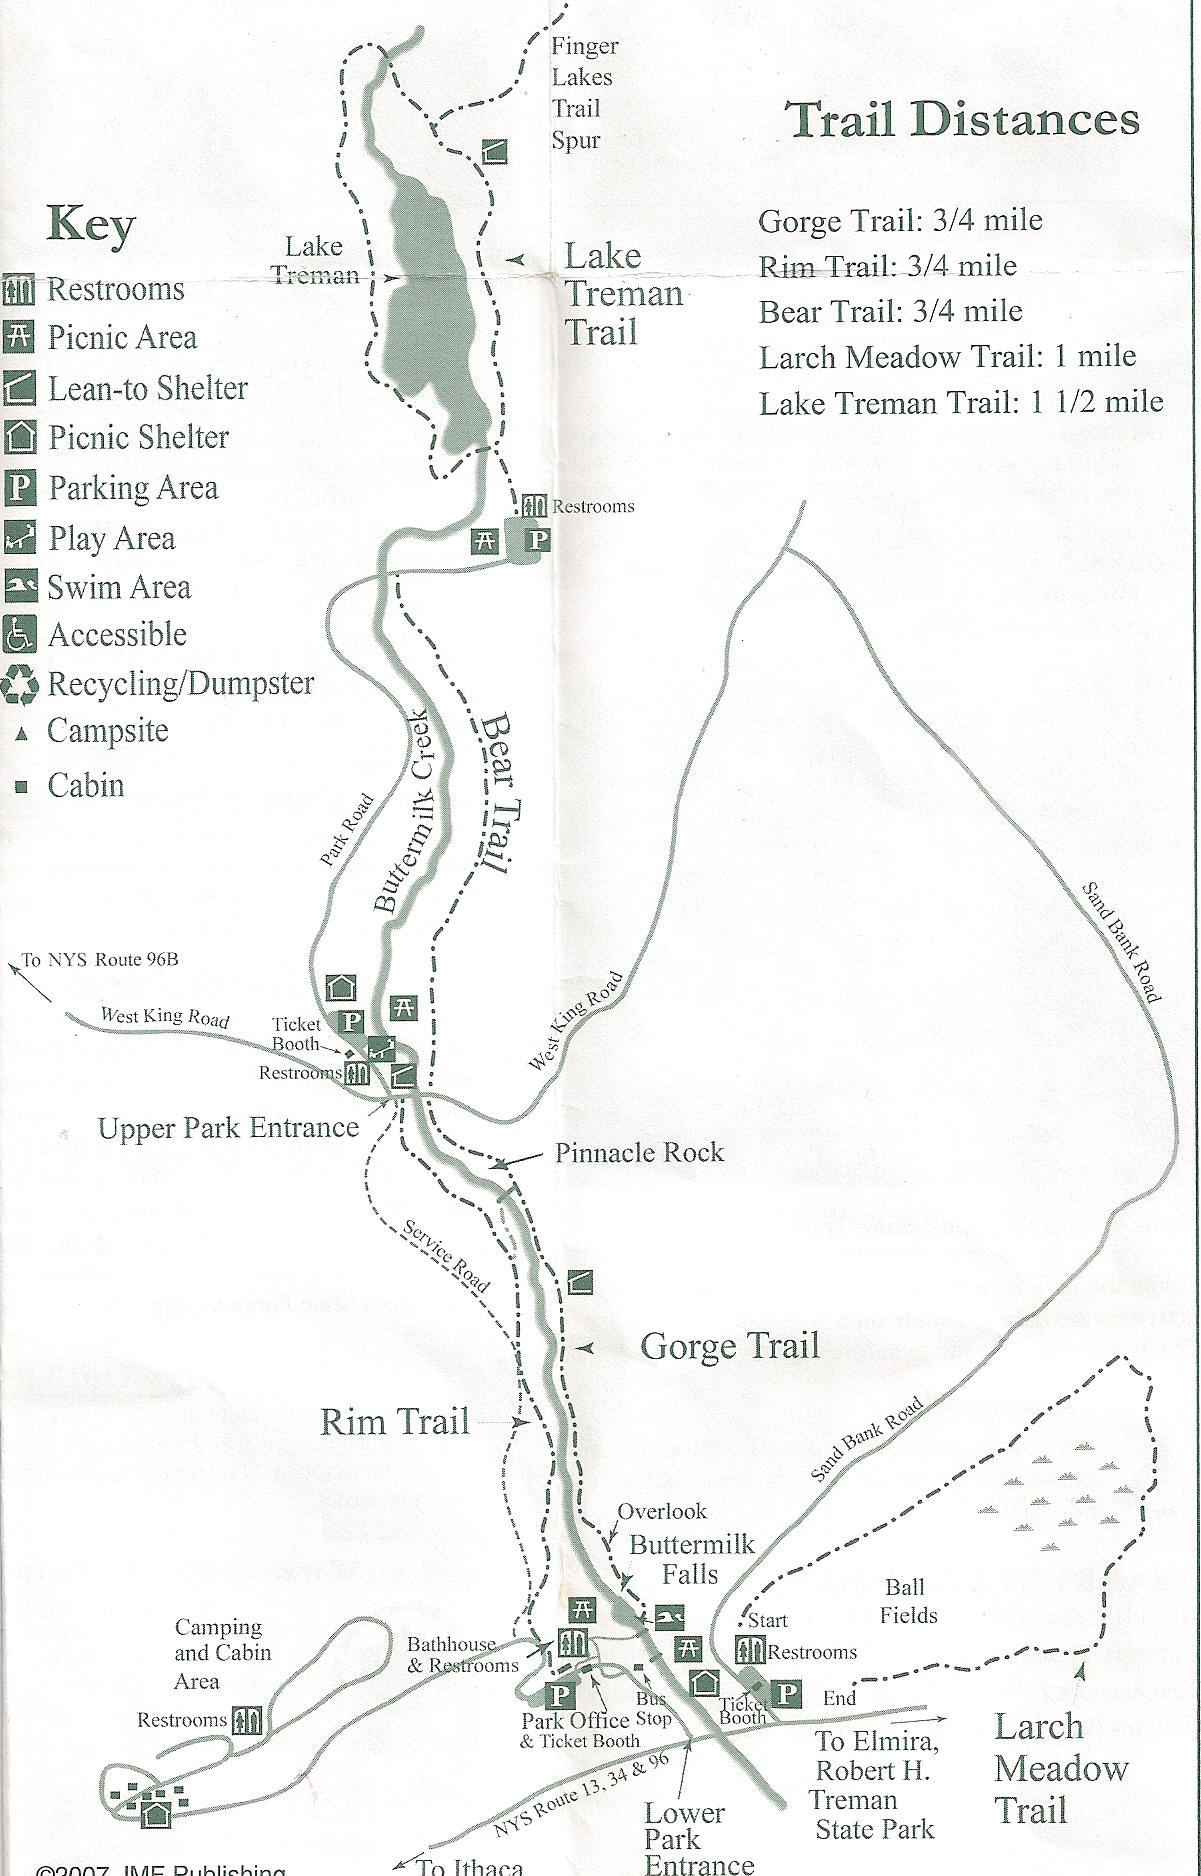 ermilk Falls State Park on haw river state park map, south mountains state park map, oxford state park map, muskegon state park map, hamburg state park map, west branch state park map, rifle river state park map, south dakota state park map, porcupine state park map, highland state park map, chain of lakes state park map, holly state park map, crawford notch state park map, columbia state park map, bay city state park map, temperance state park map, webster state park map, sterling forest state park map, milton state park map, wilson state park map,